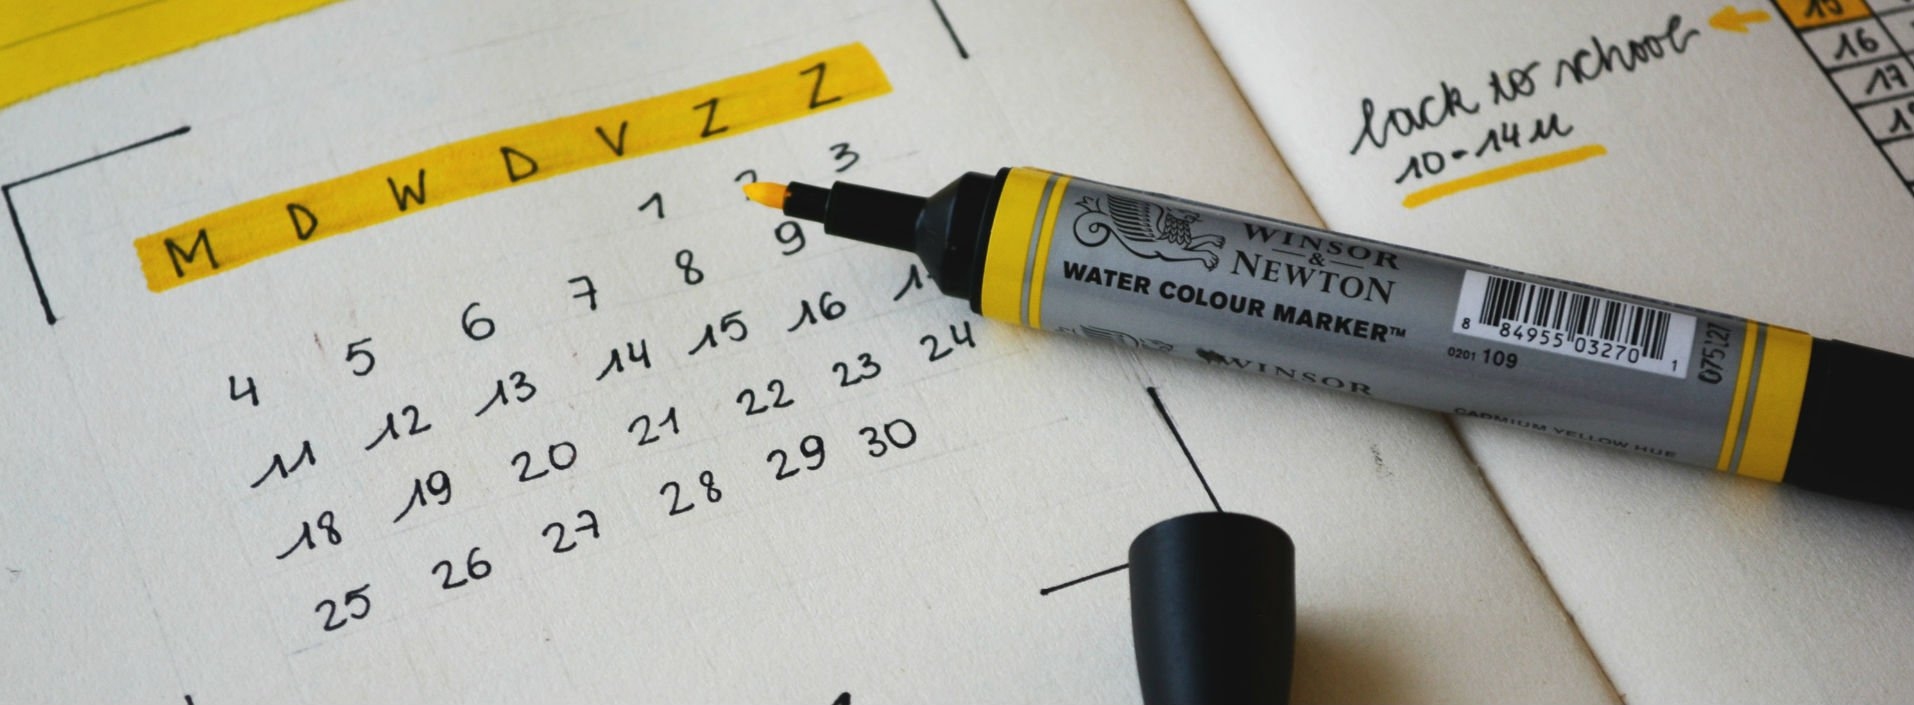 Since and For: Calendar marking dates for range or specific times.